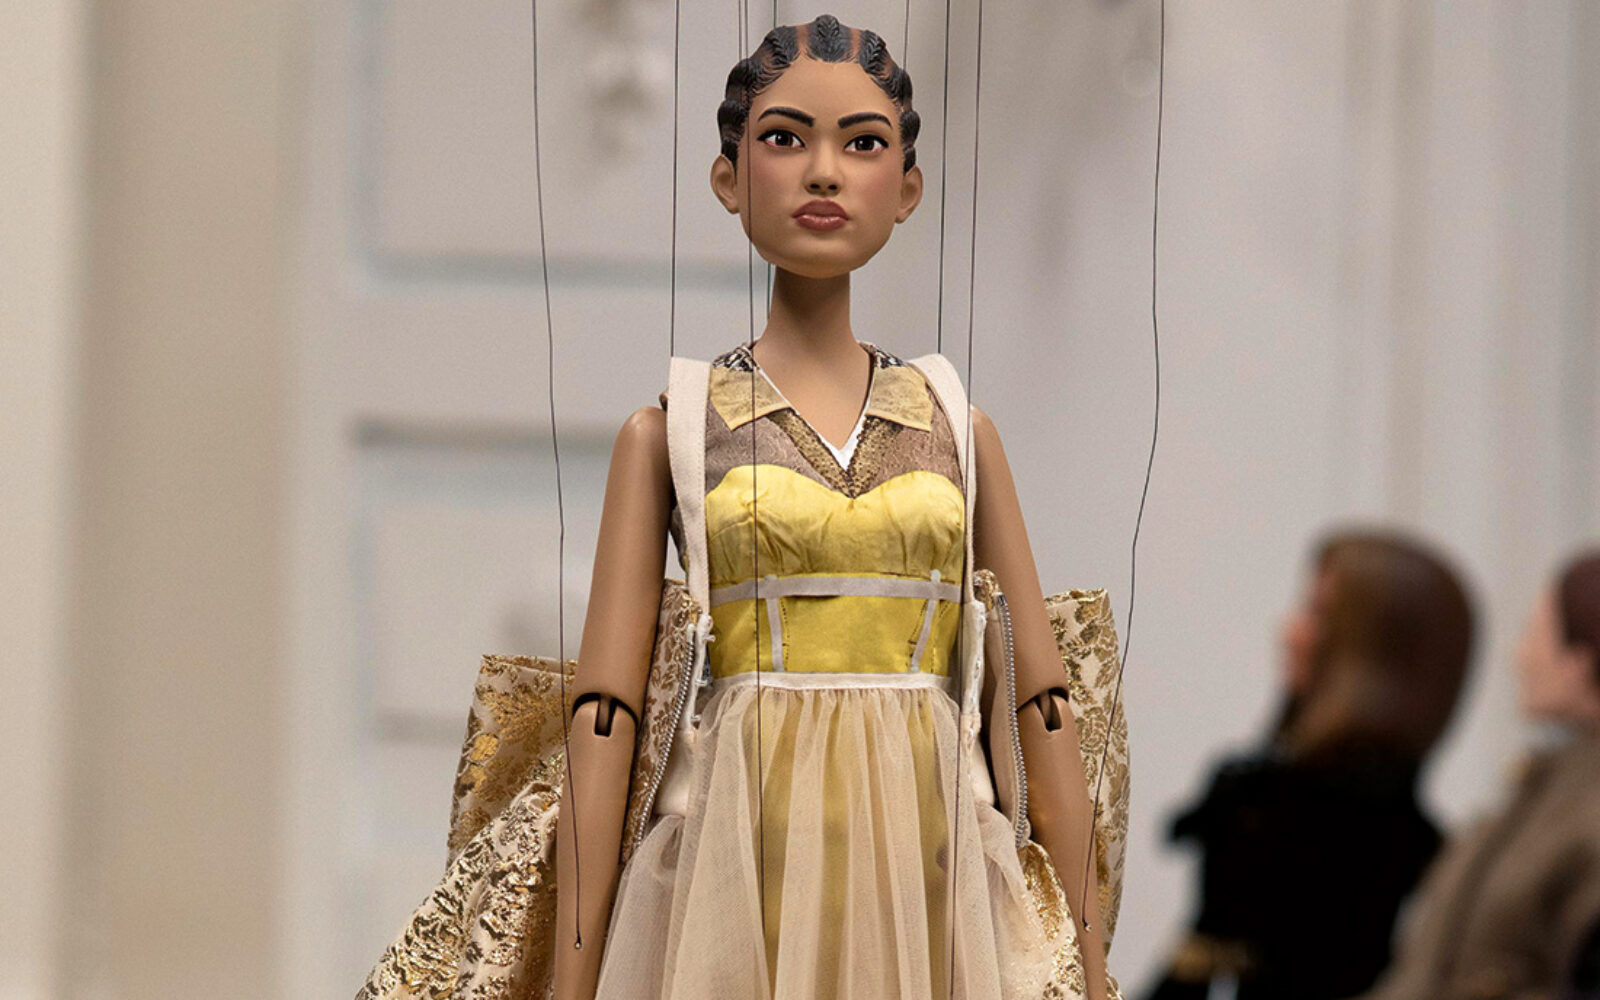 A doll walks the Moschino runway in place of models, wearing a gold dress